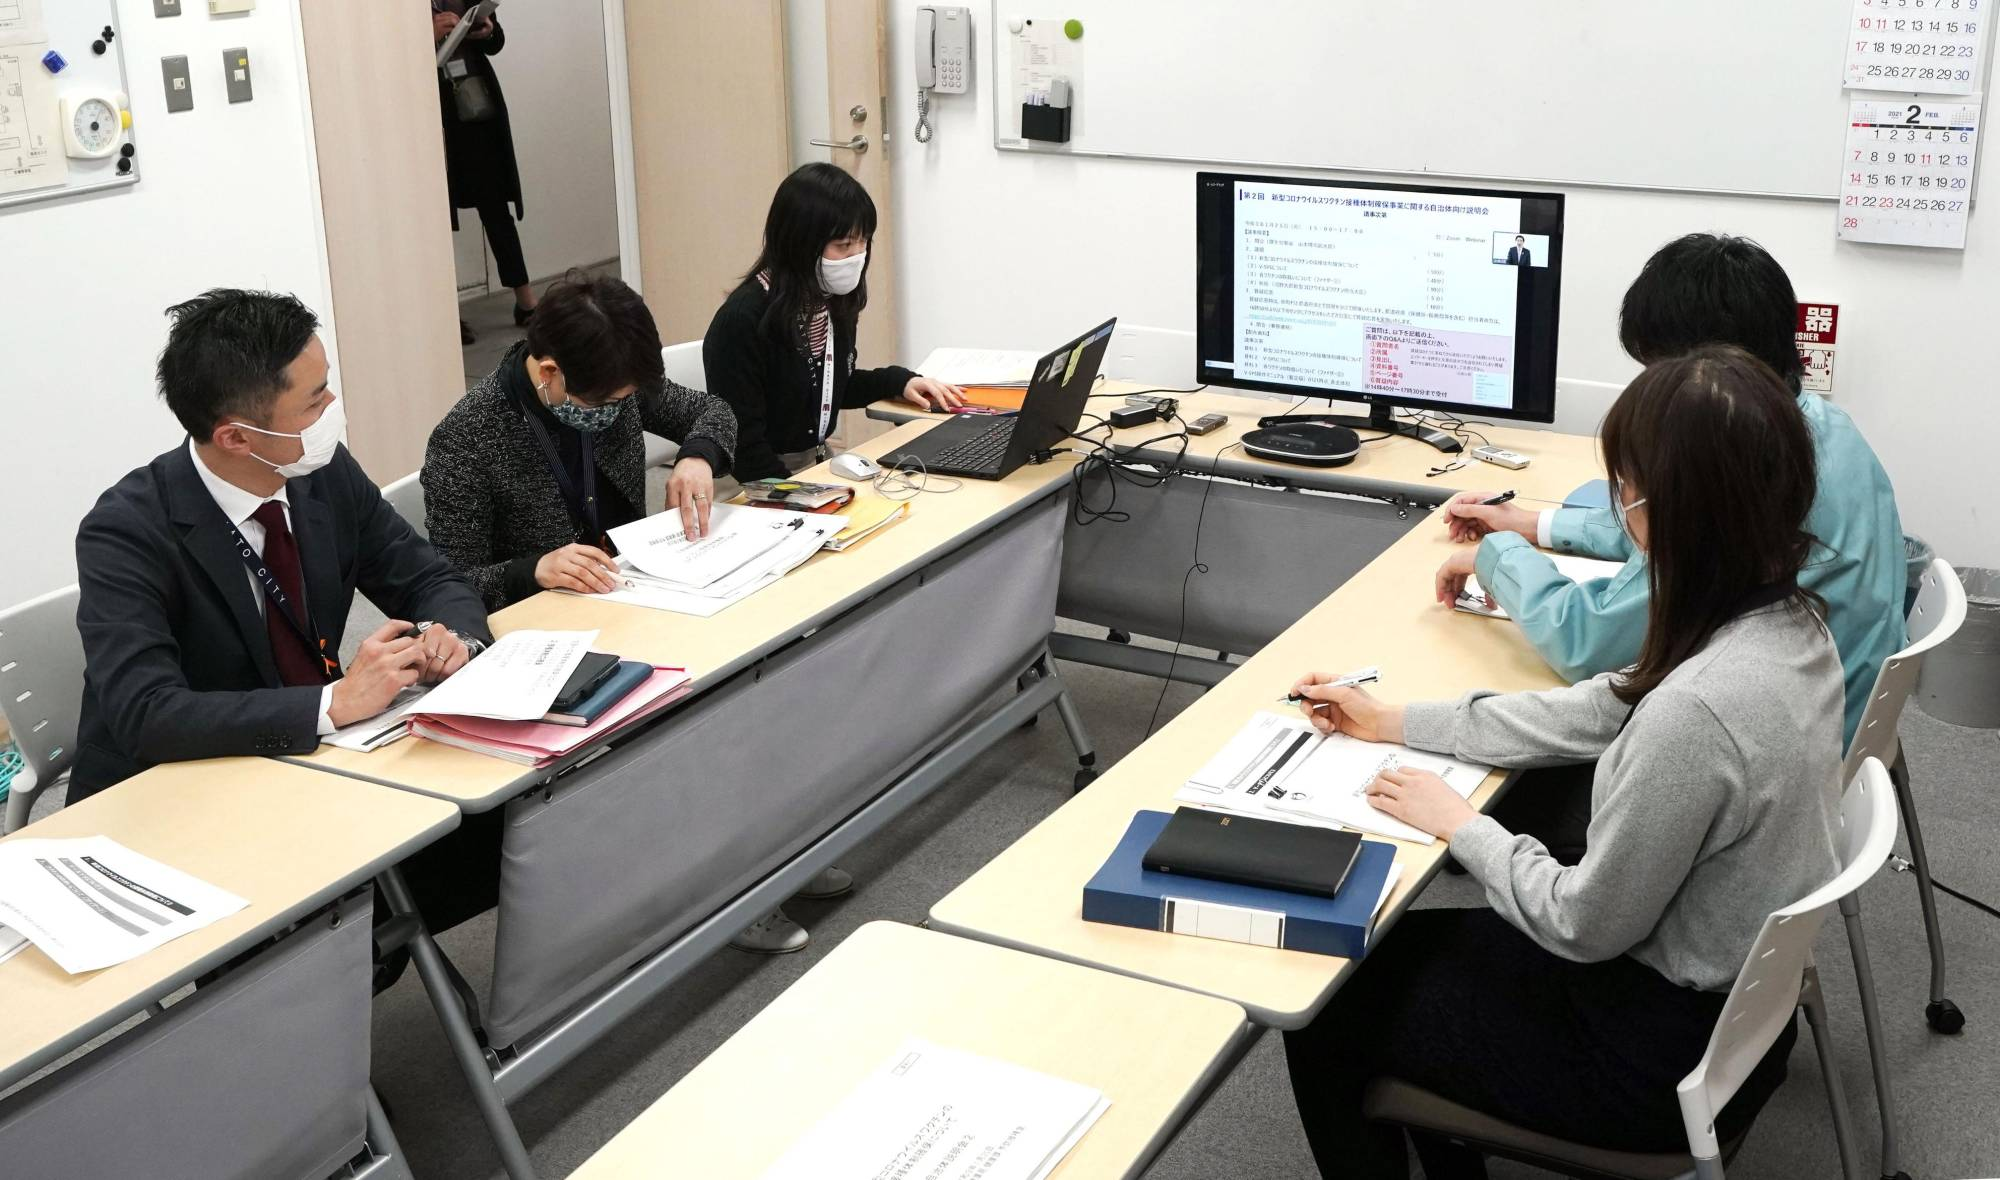 Local health center staff watch the health ministry's online briefing about vaccine rollout plans on Monday in Tokyo. | KYODO